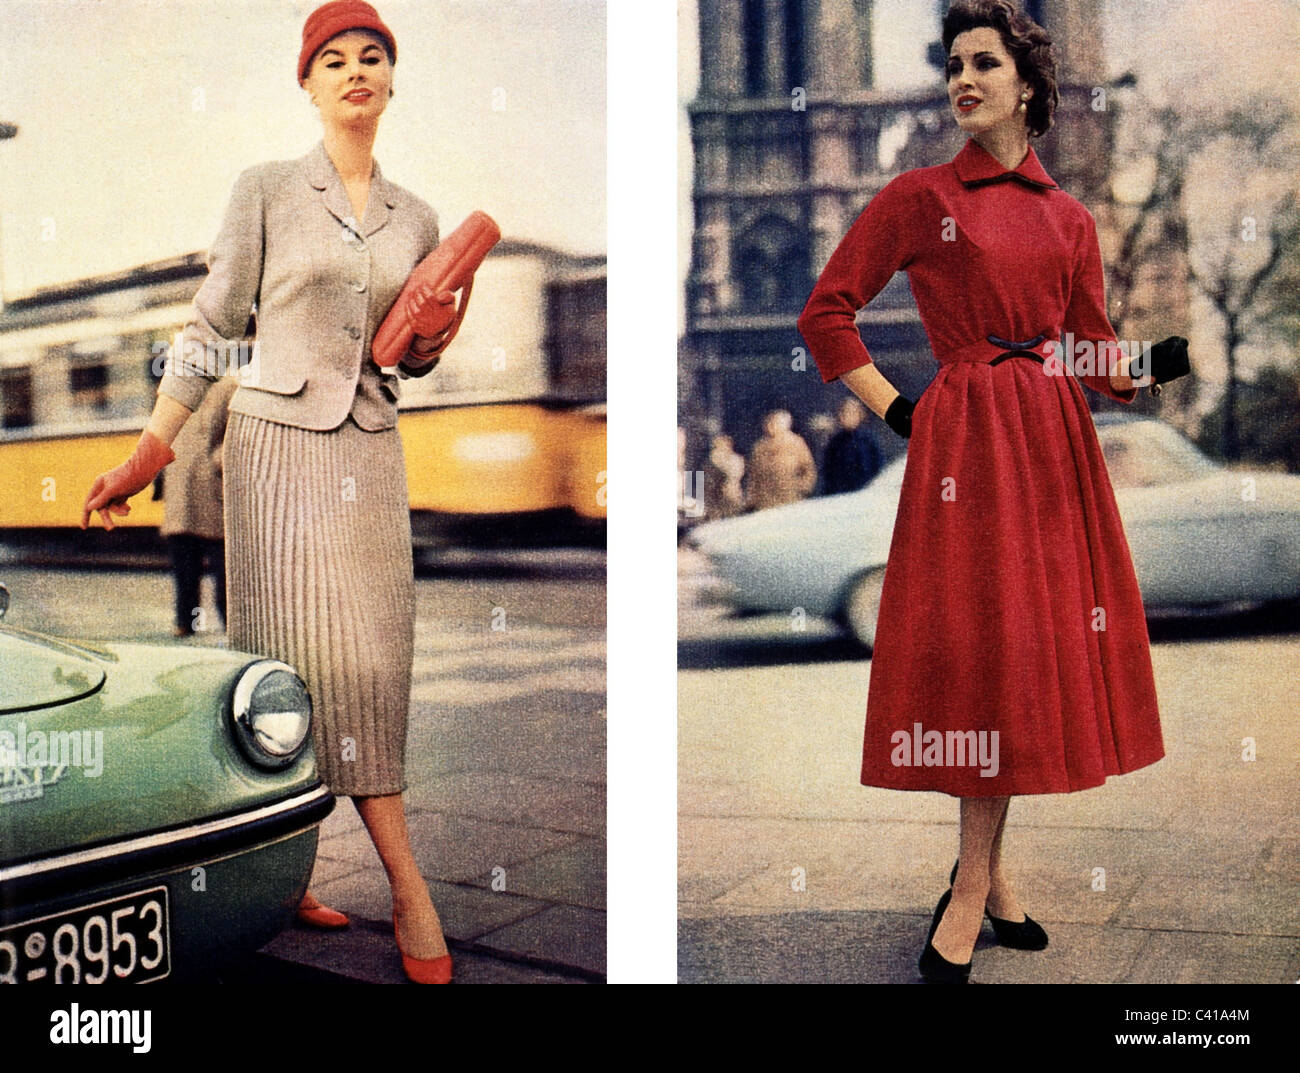 e9952ed59f 1950s Fashion Stock Photos   1950s Fashion Stock Images - Alamy